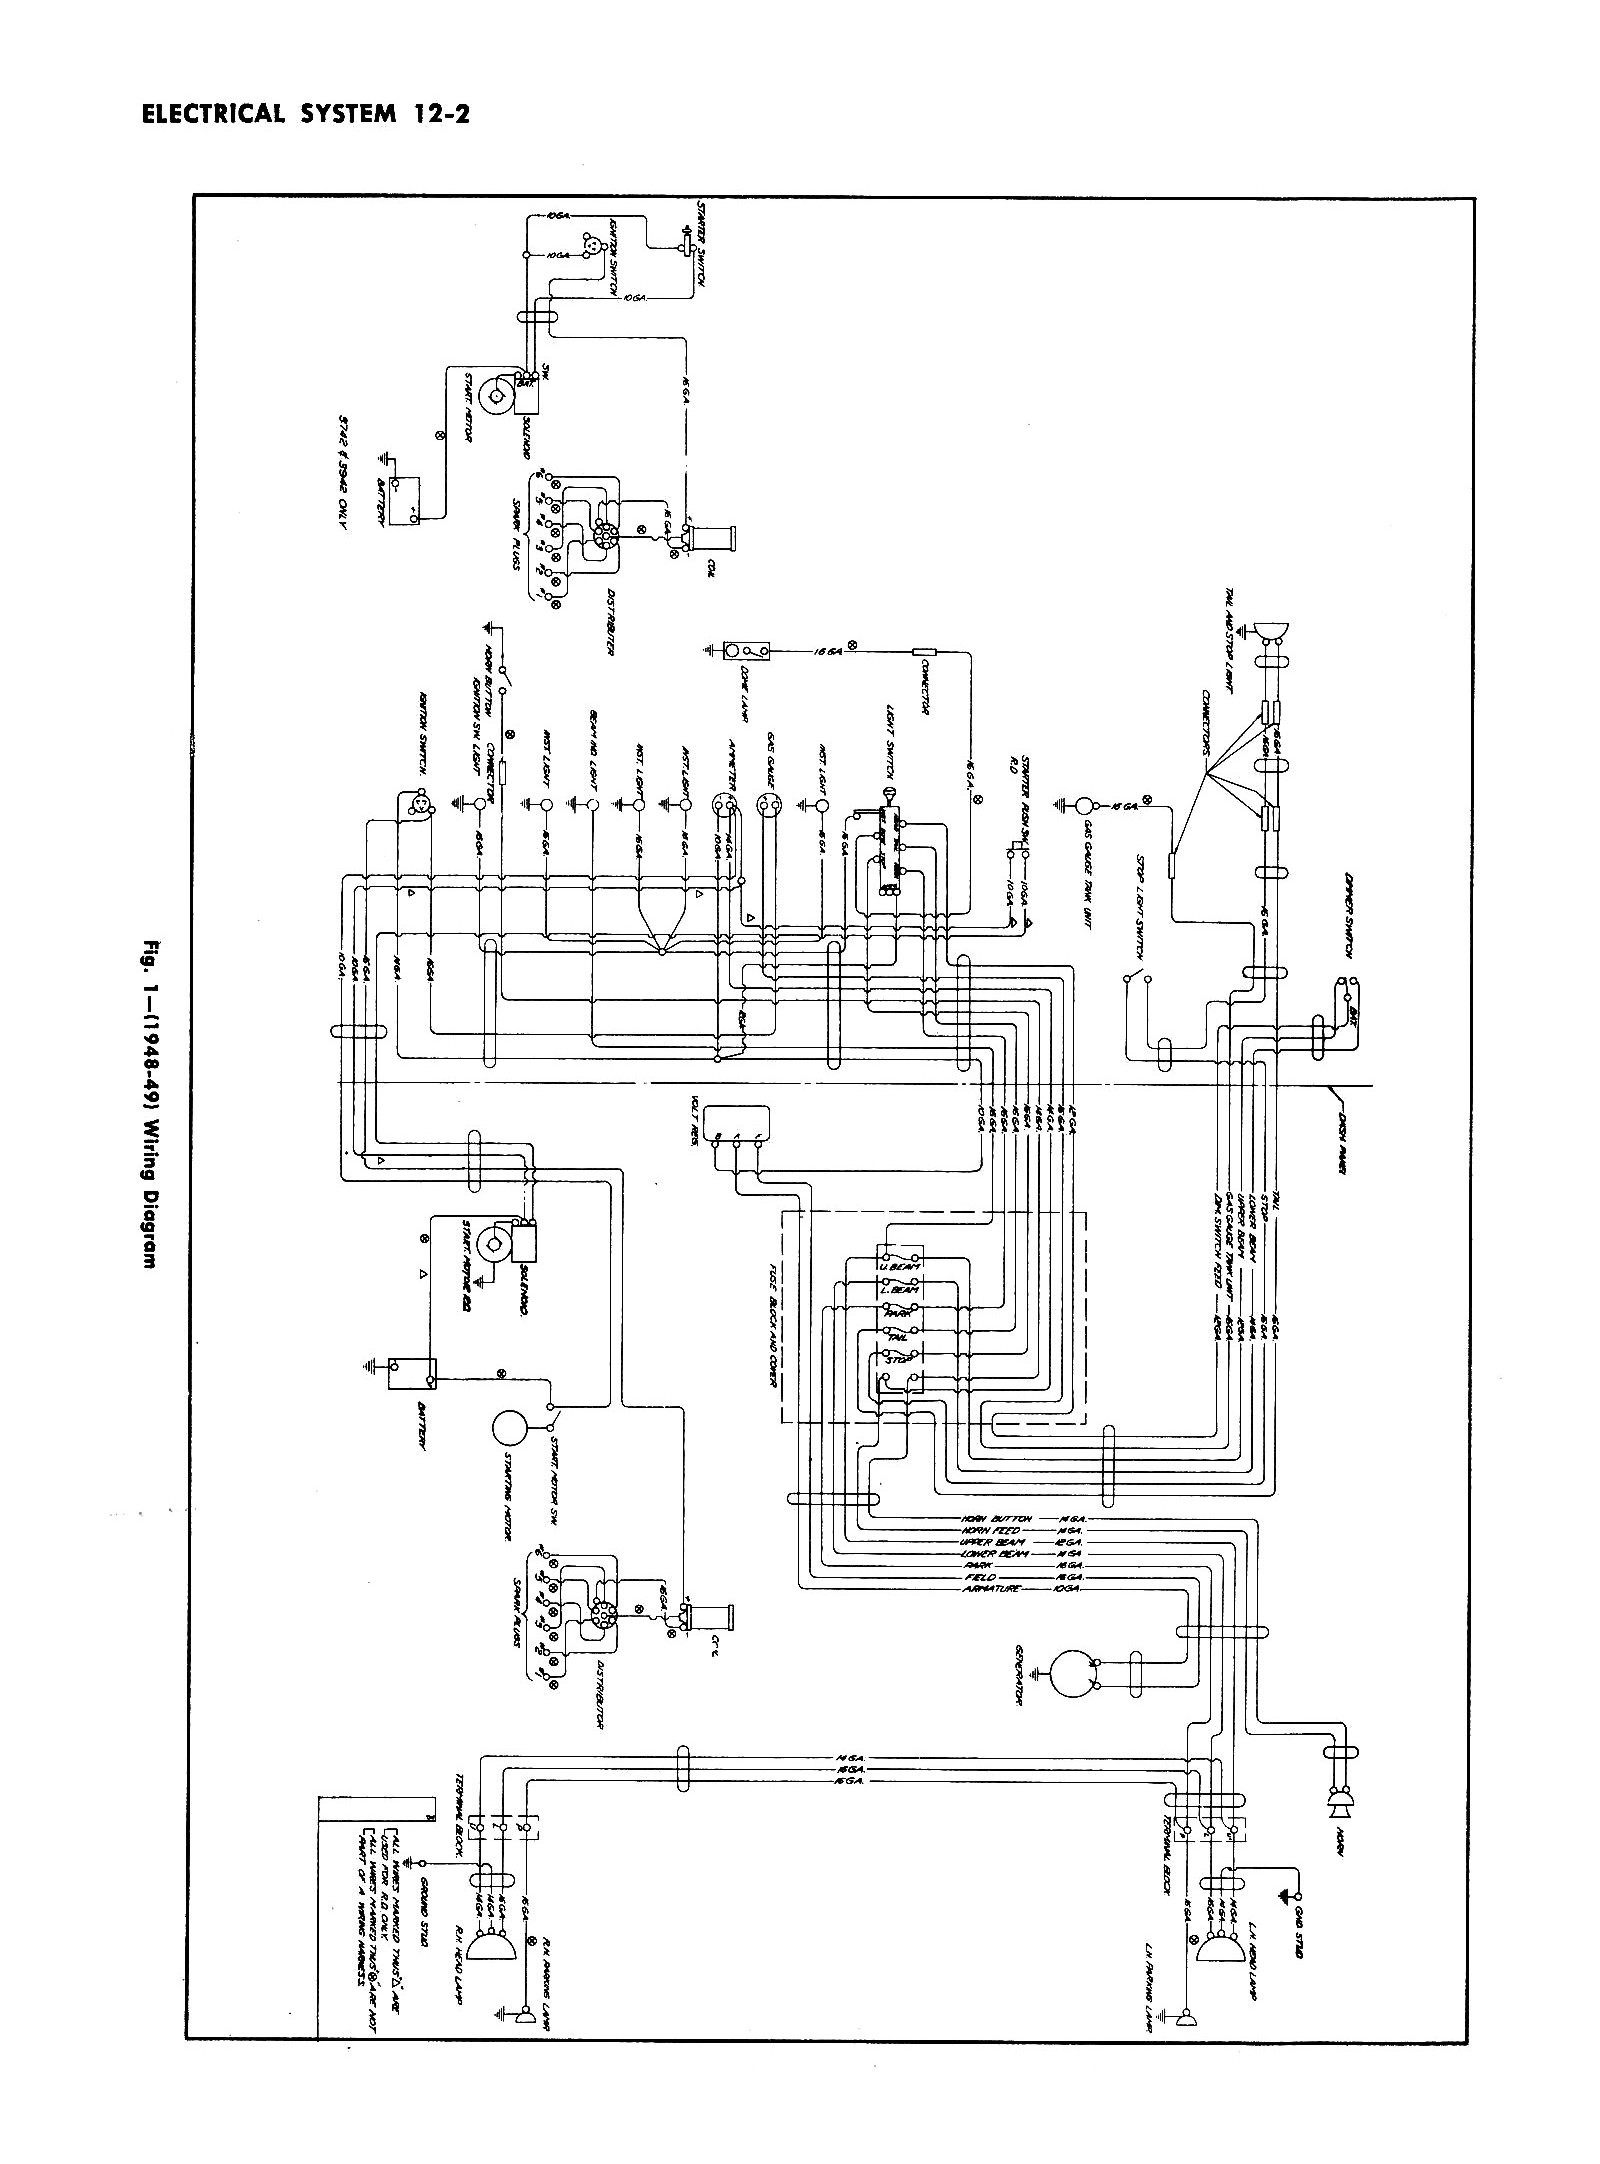 48car chevy wiring diagrams chevy headlight switch wiring diagram at fashall.co